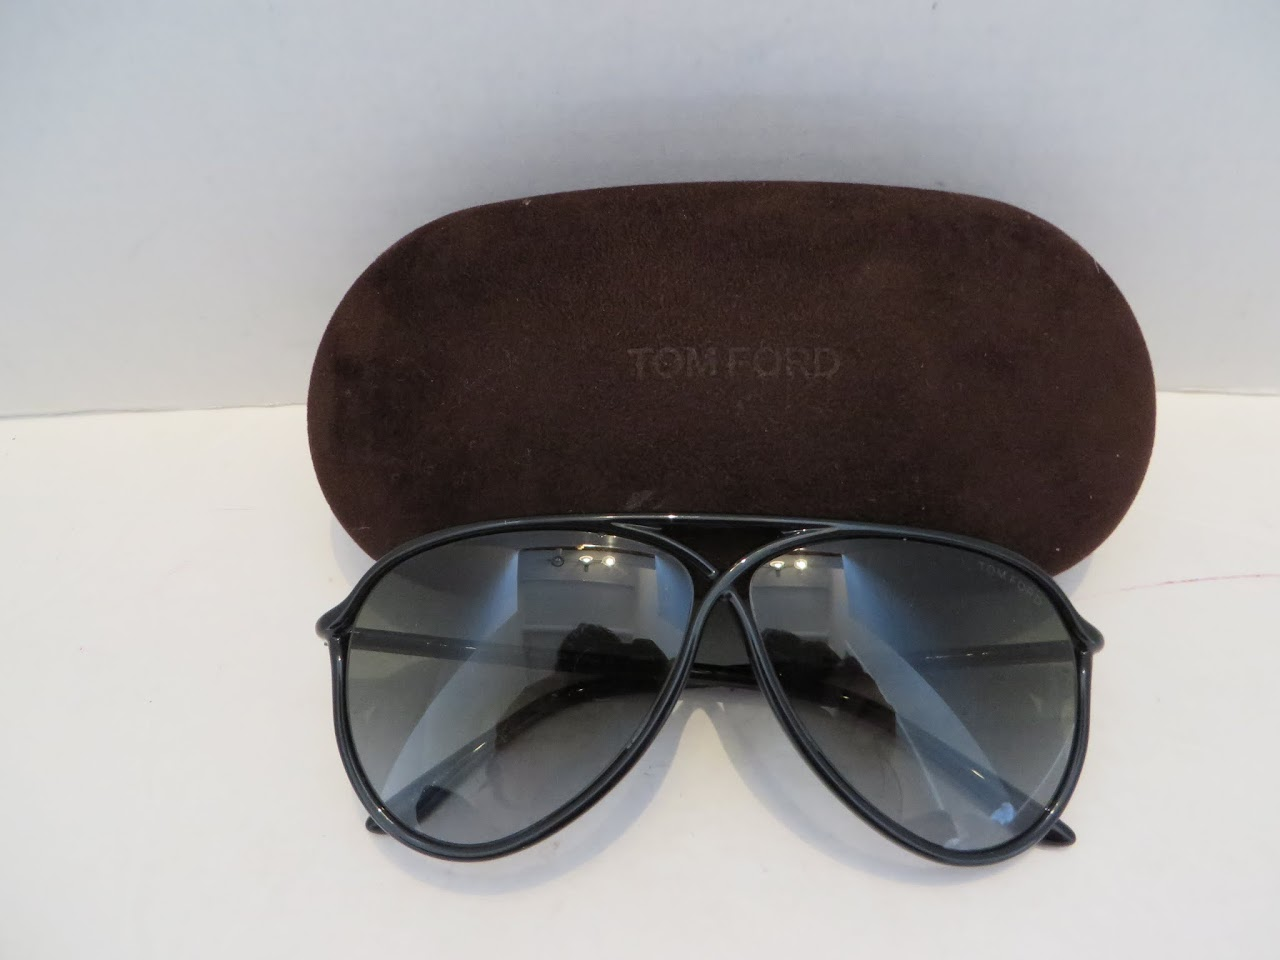 Tom Ford Maximillion Aviators